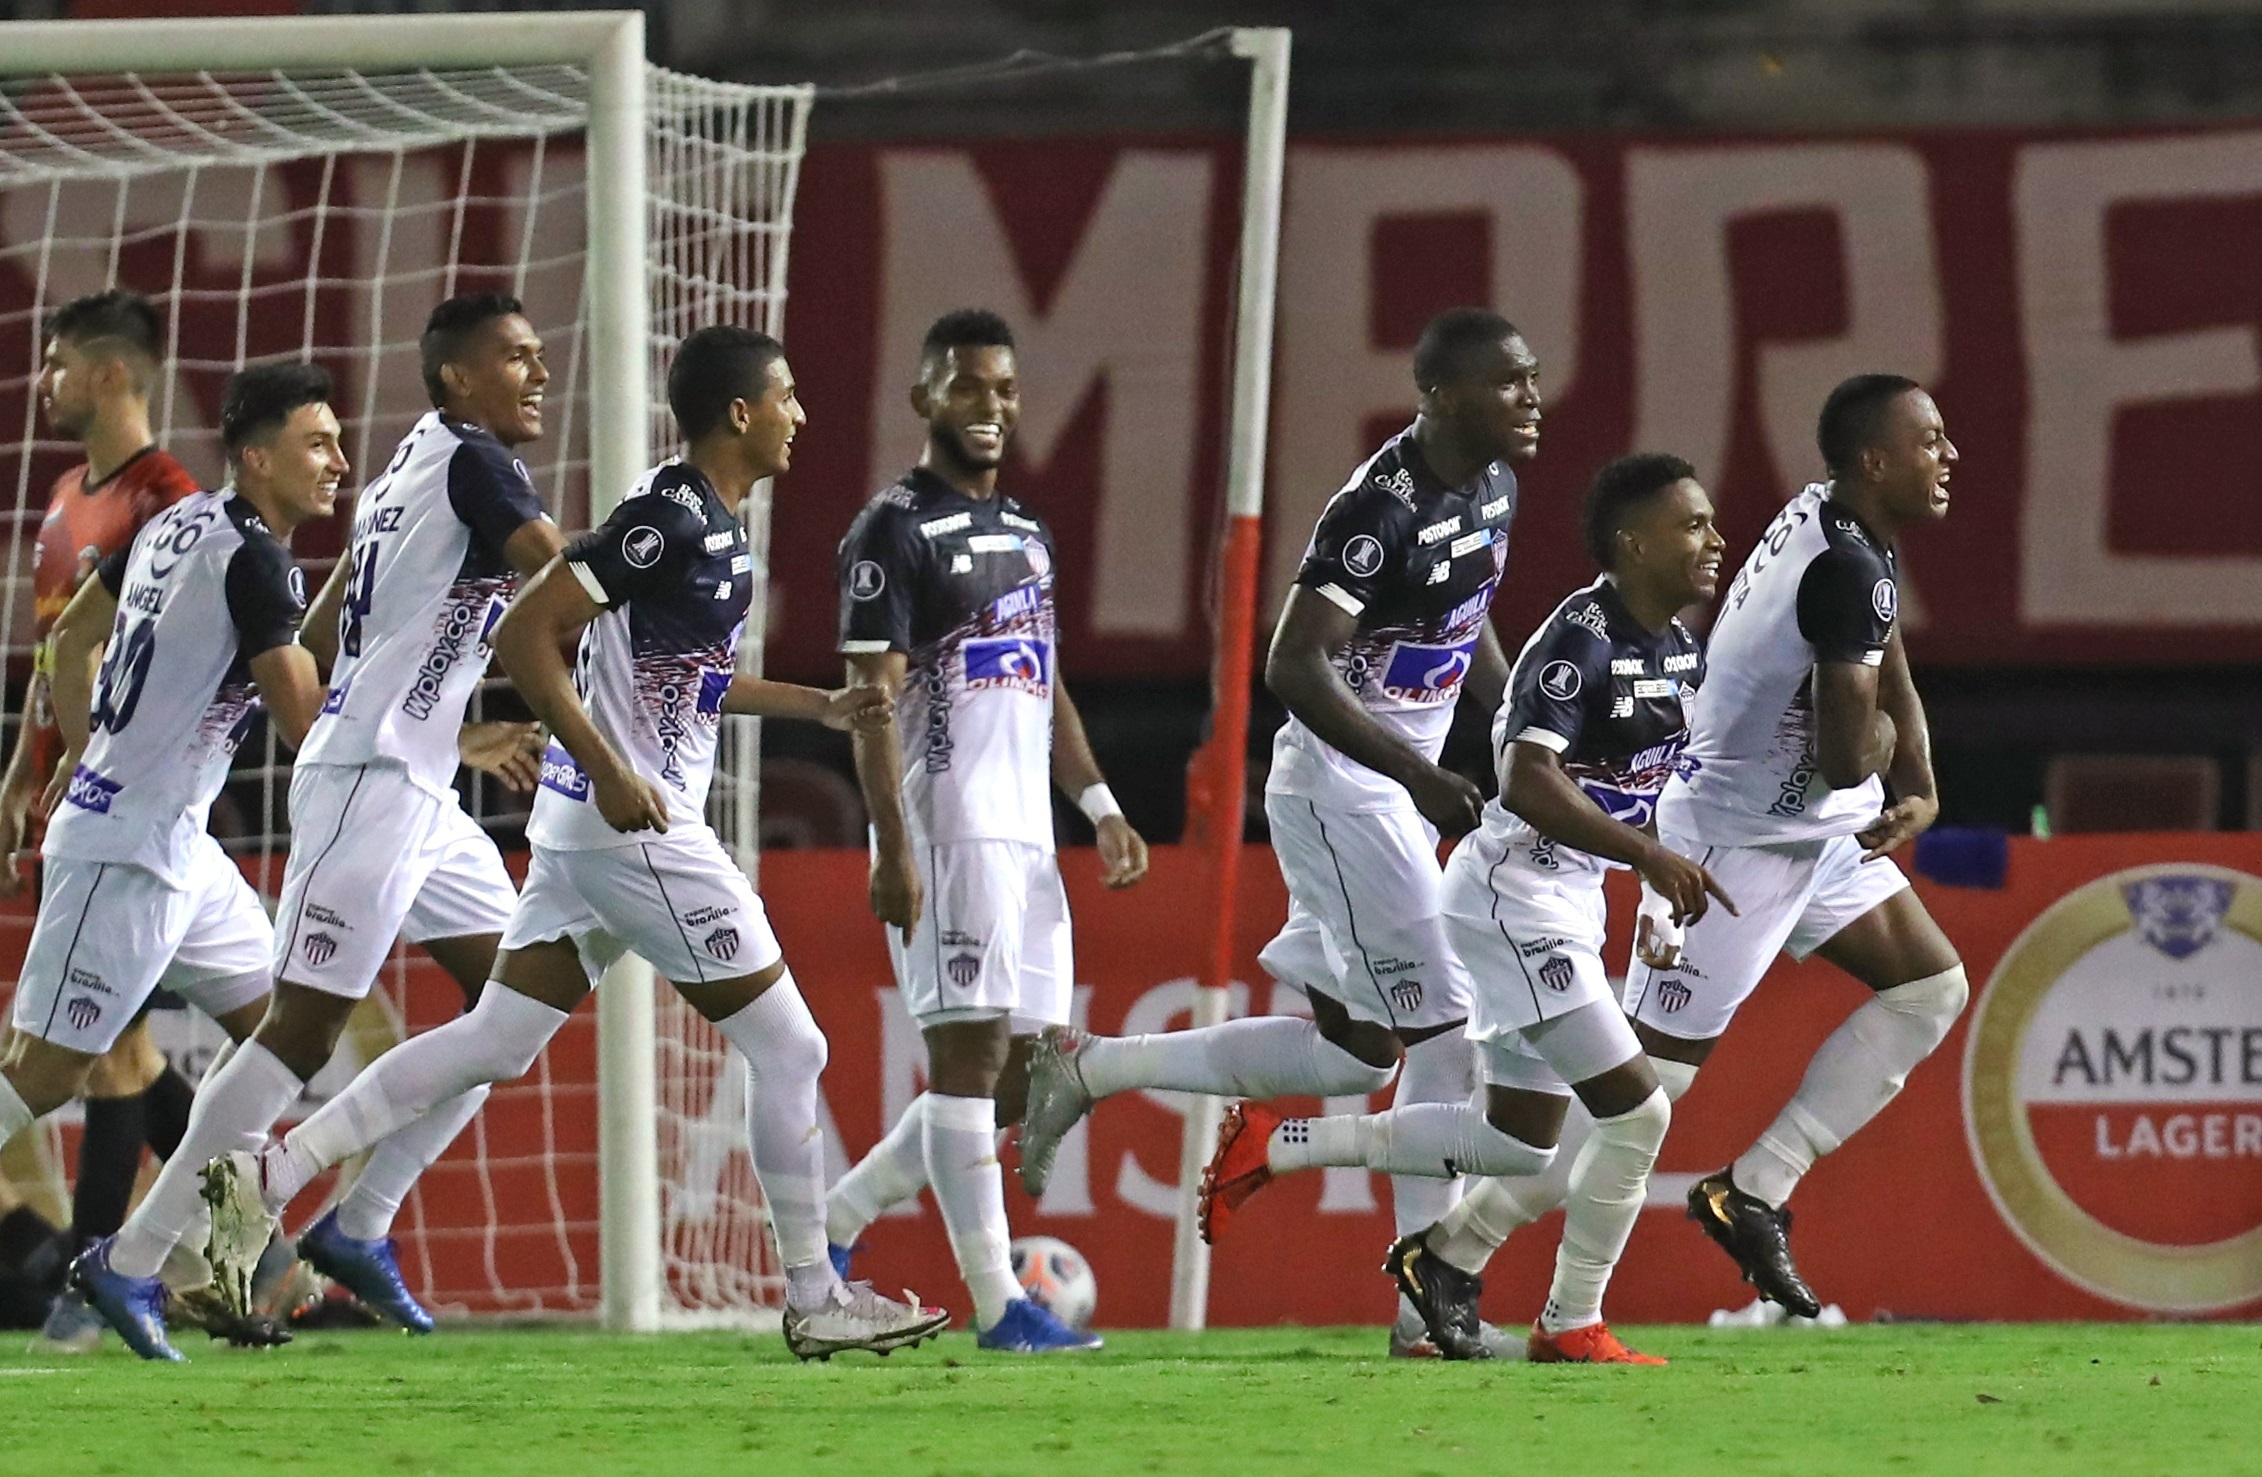 Caracas 1, Junior 2: The result is good